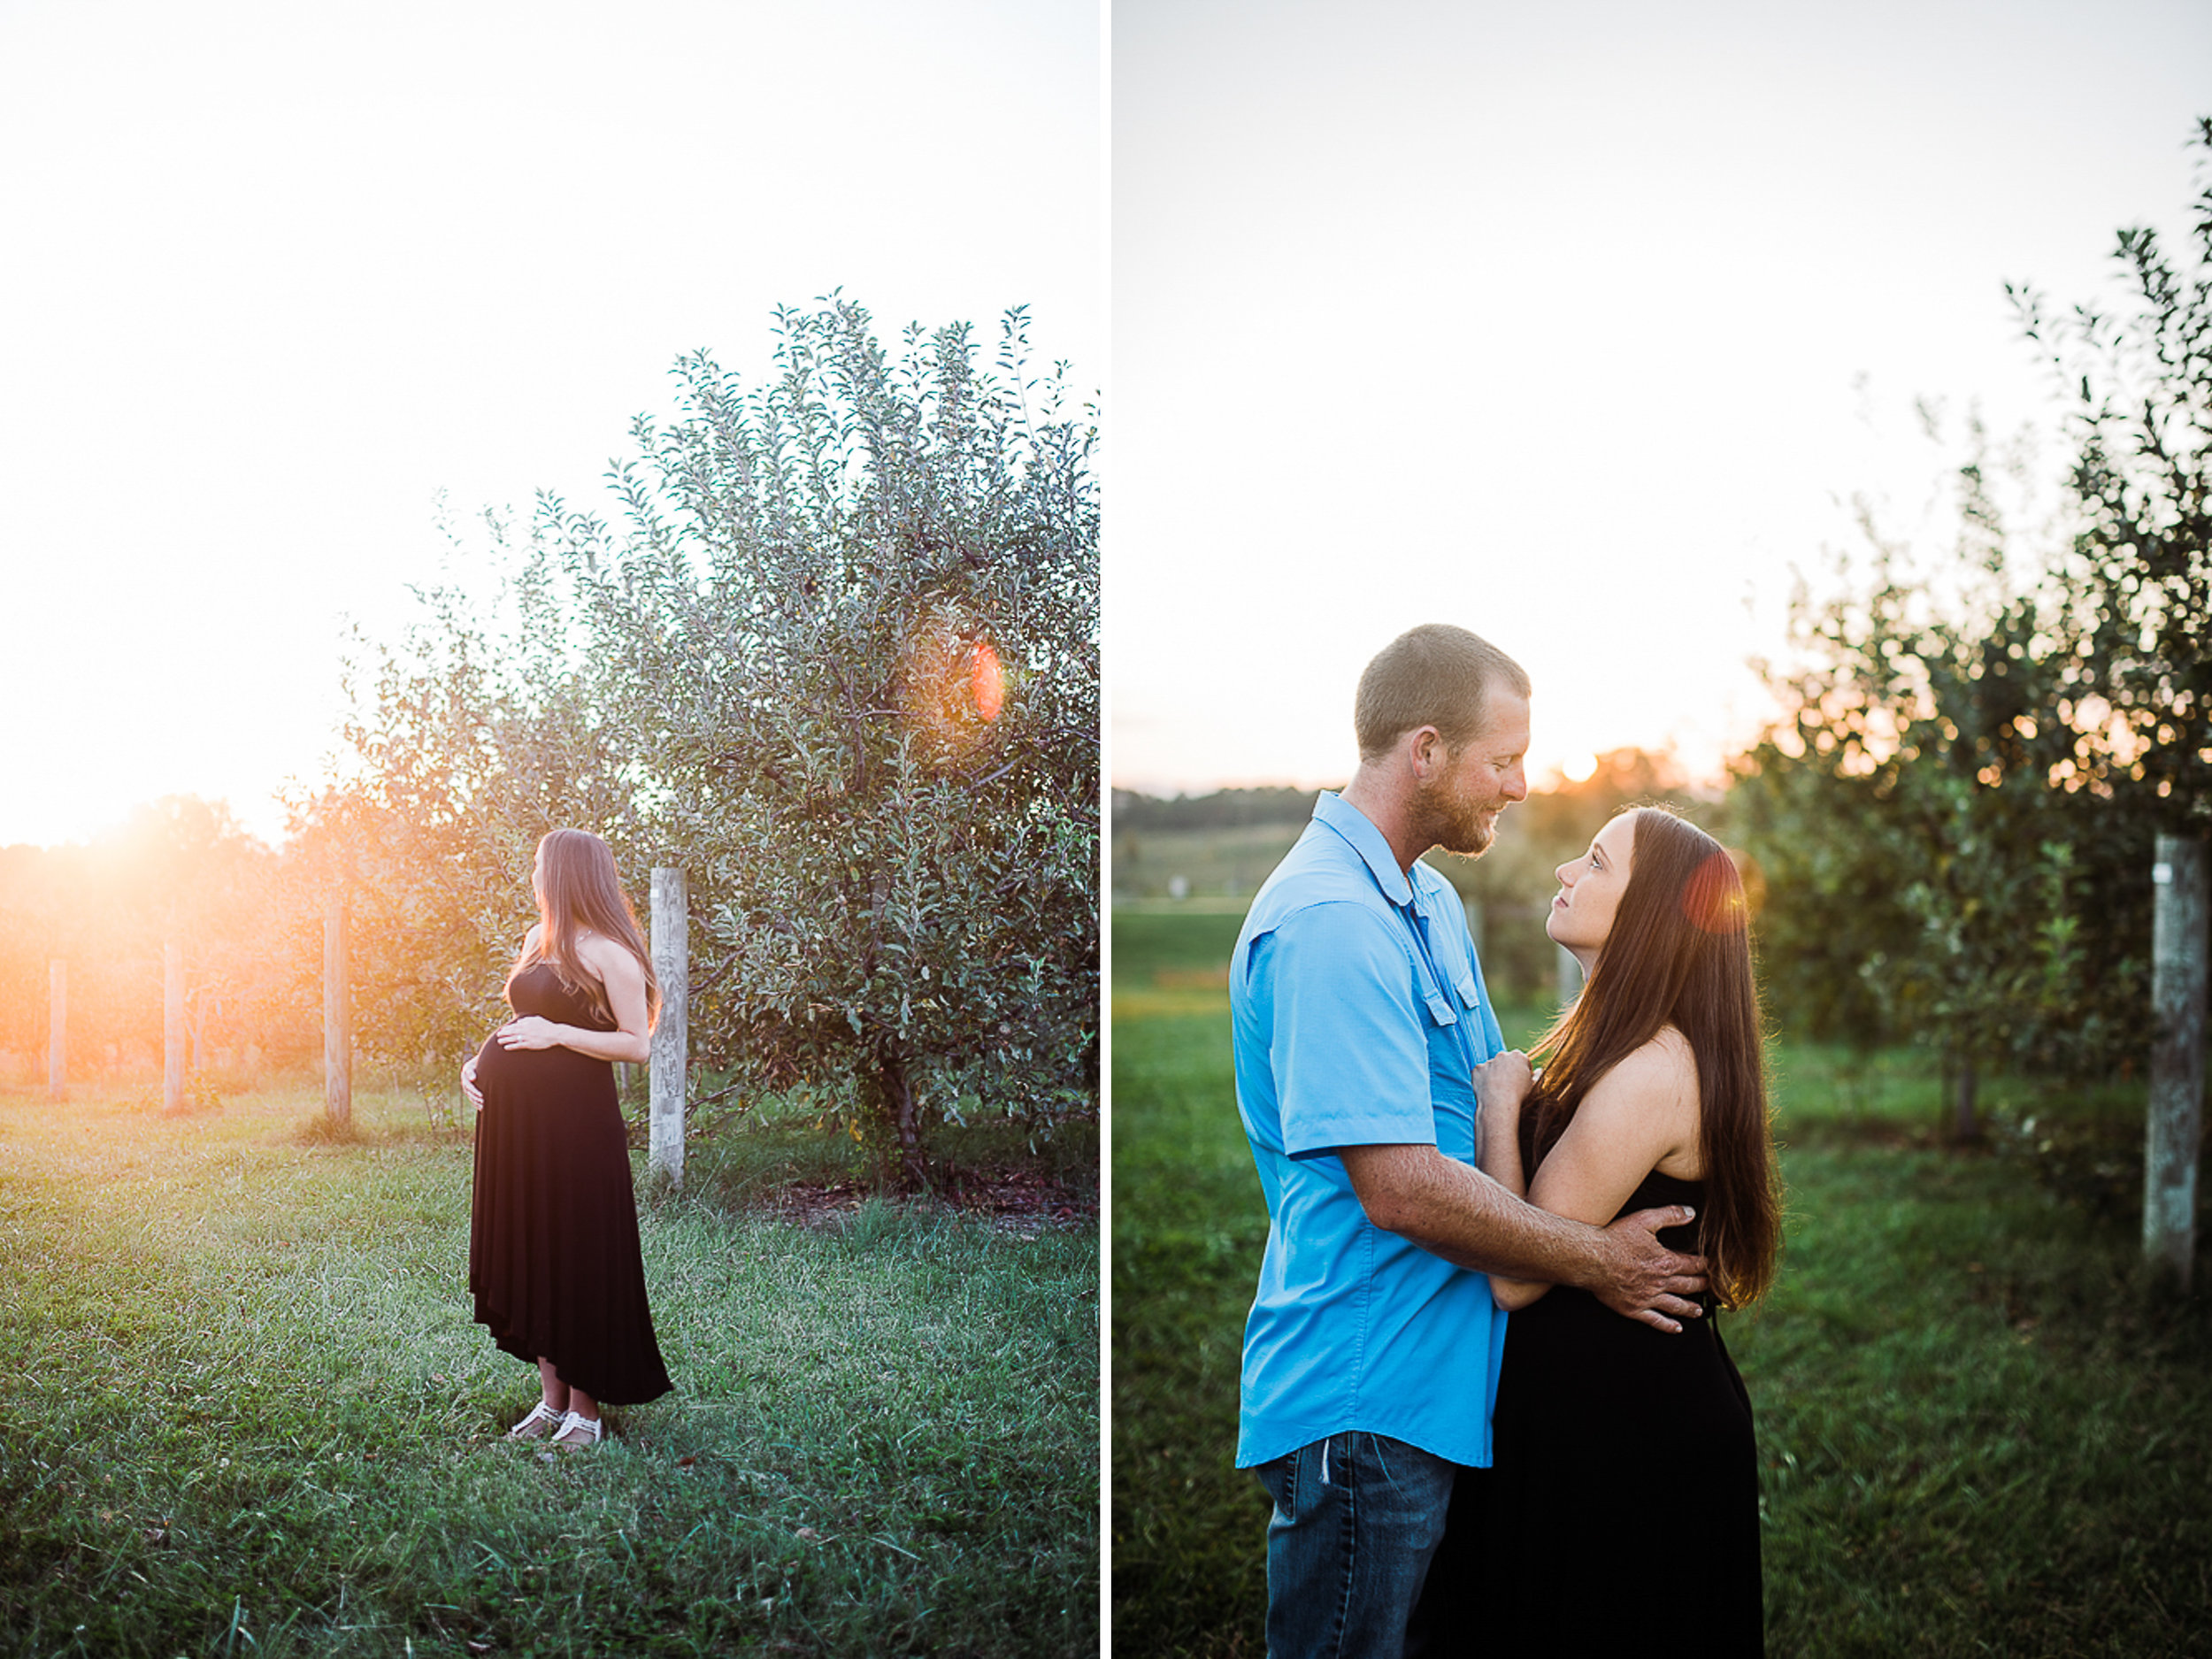 Baby Bump, Maternity Portraits, Mountain Maternity, Vineyard, River Maternity 14.jpg